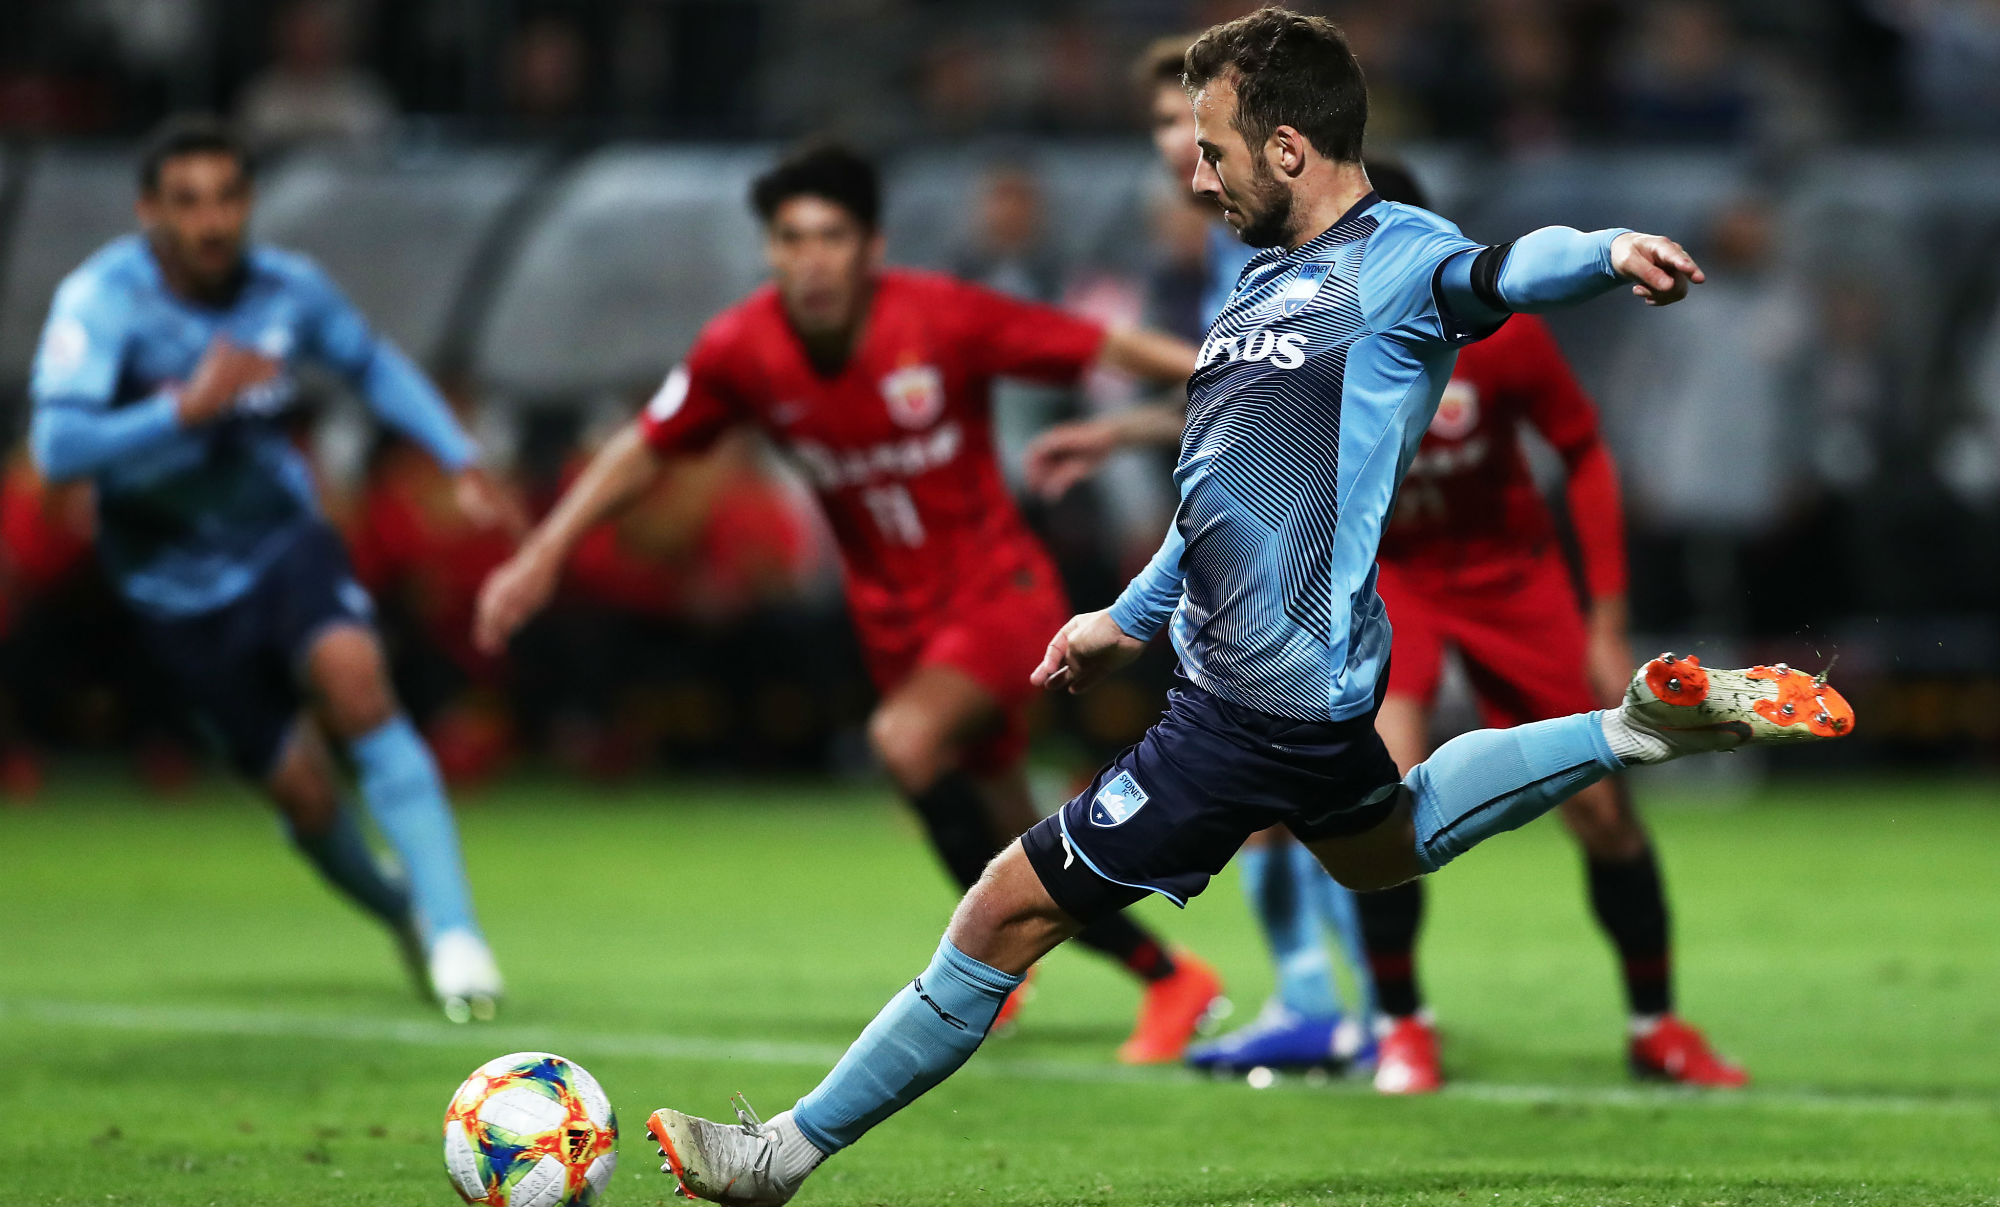 Adam Le Fondre fires Sydney FC ahead against Shanghai SIPG at Jubilee Oval